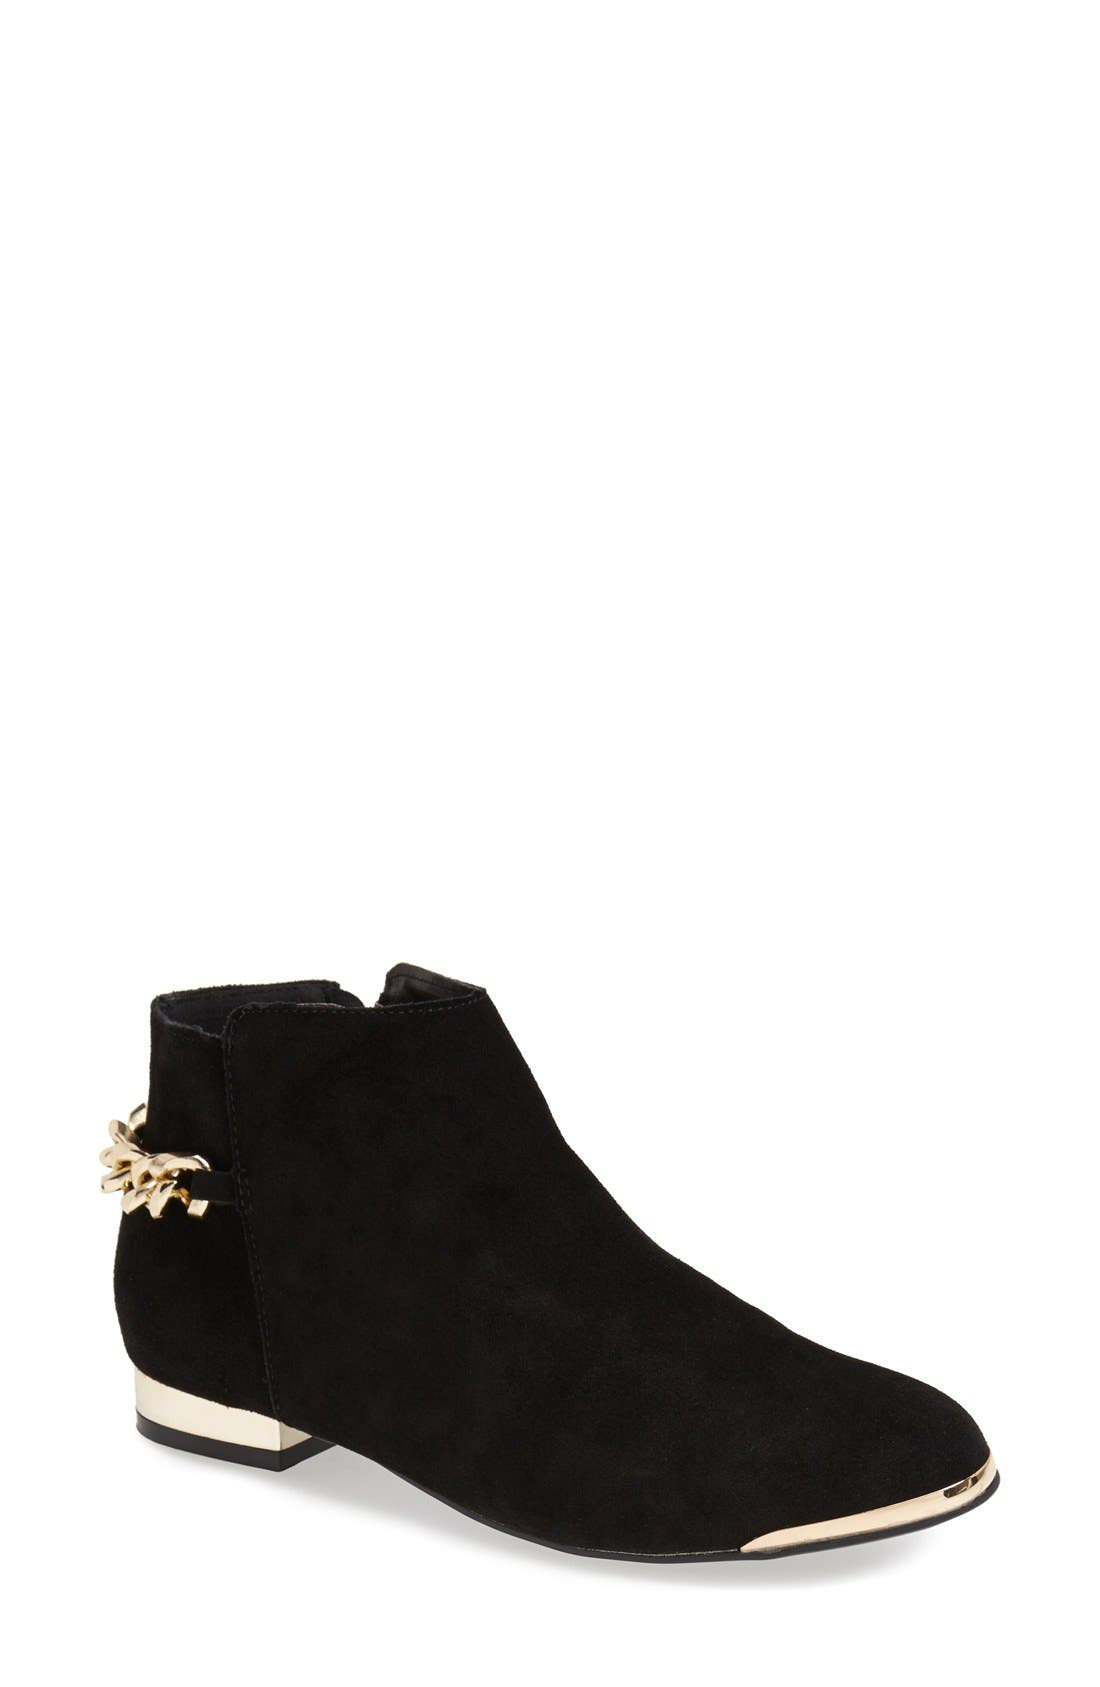 Main Image - Topshop 'Bam Bam' Gold Chain Chelsea Boot (Women)